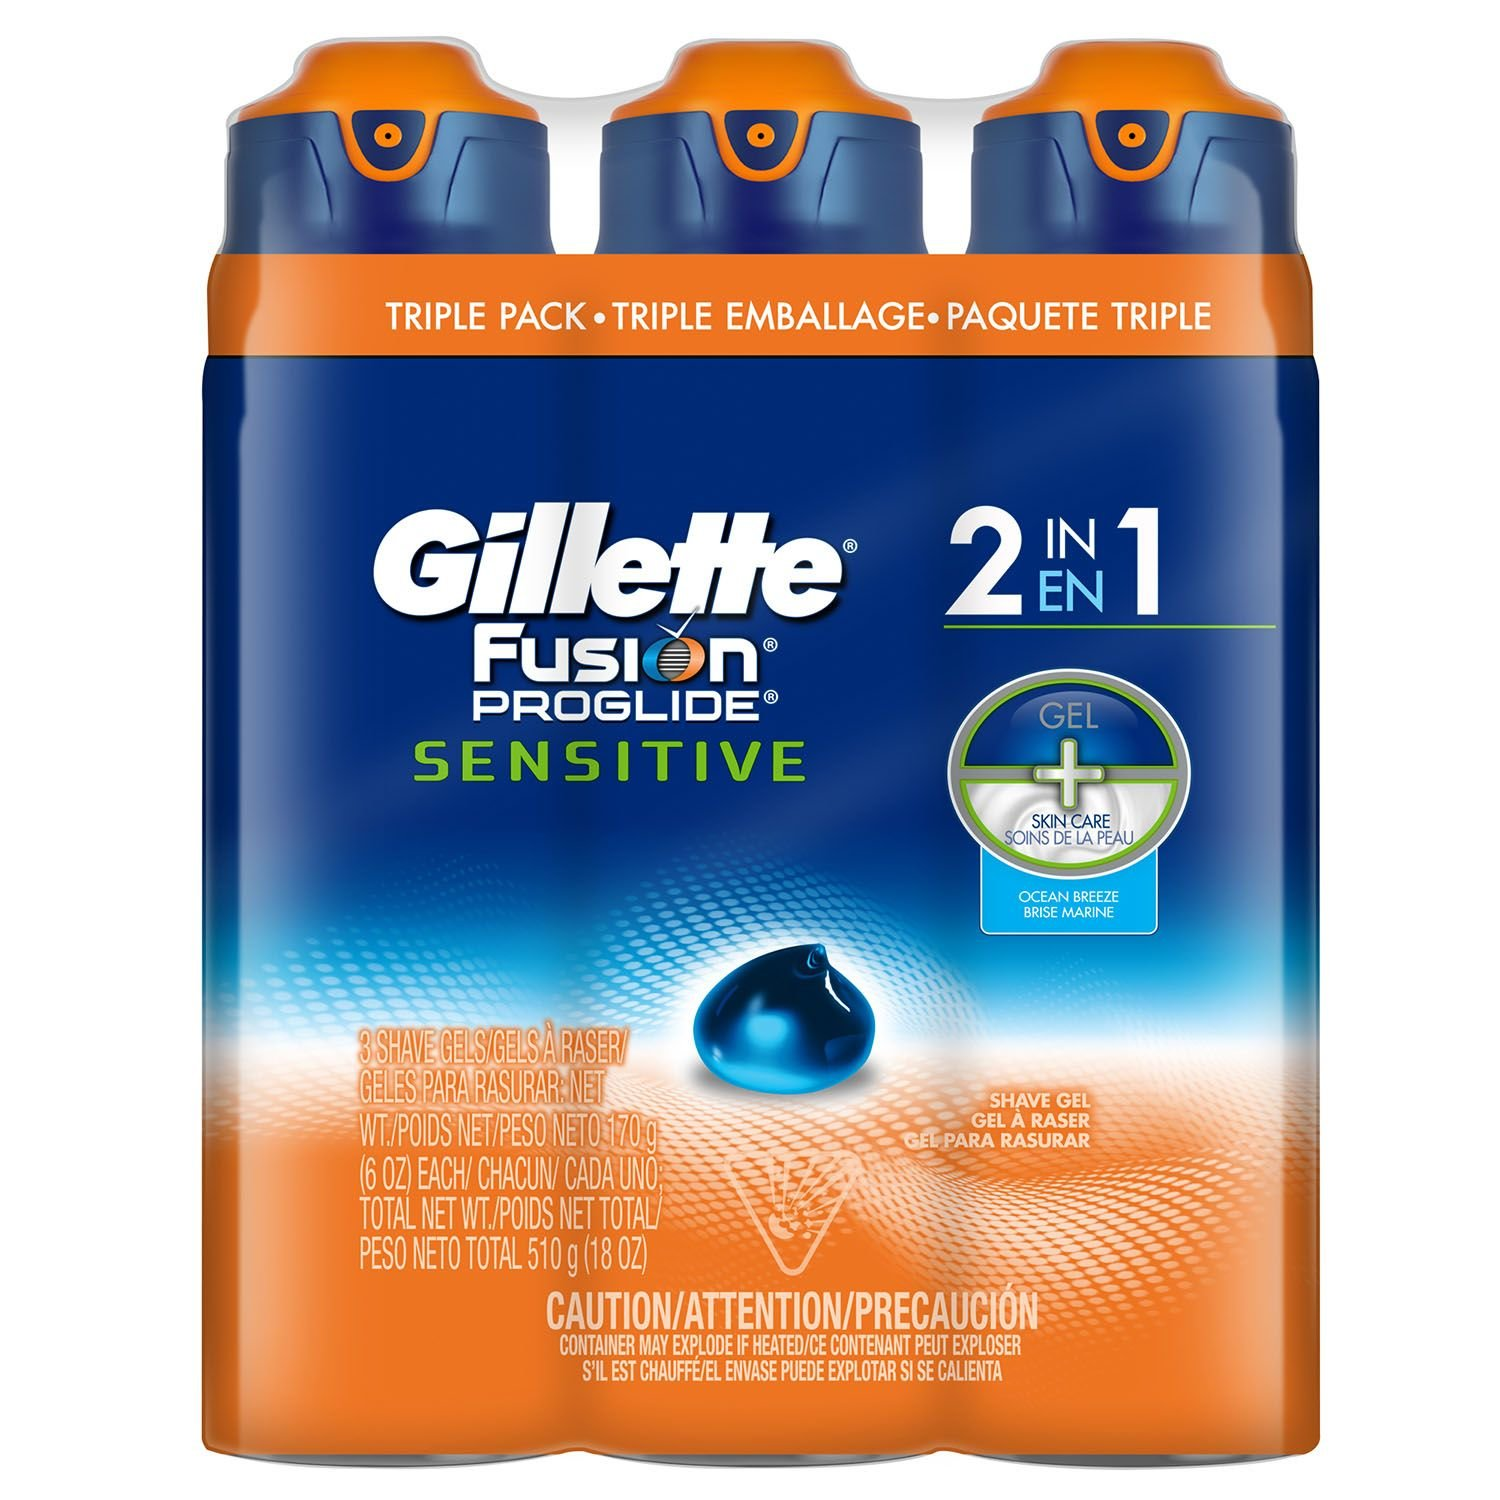 Gillette Fusion ProGlide 2-in-1 Shave Gel, Ocean Breeze (6 oz, 3 pk.) ES